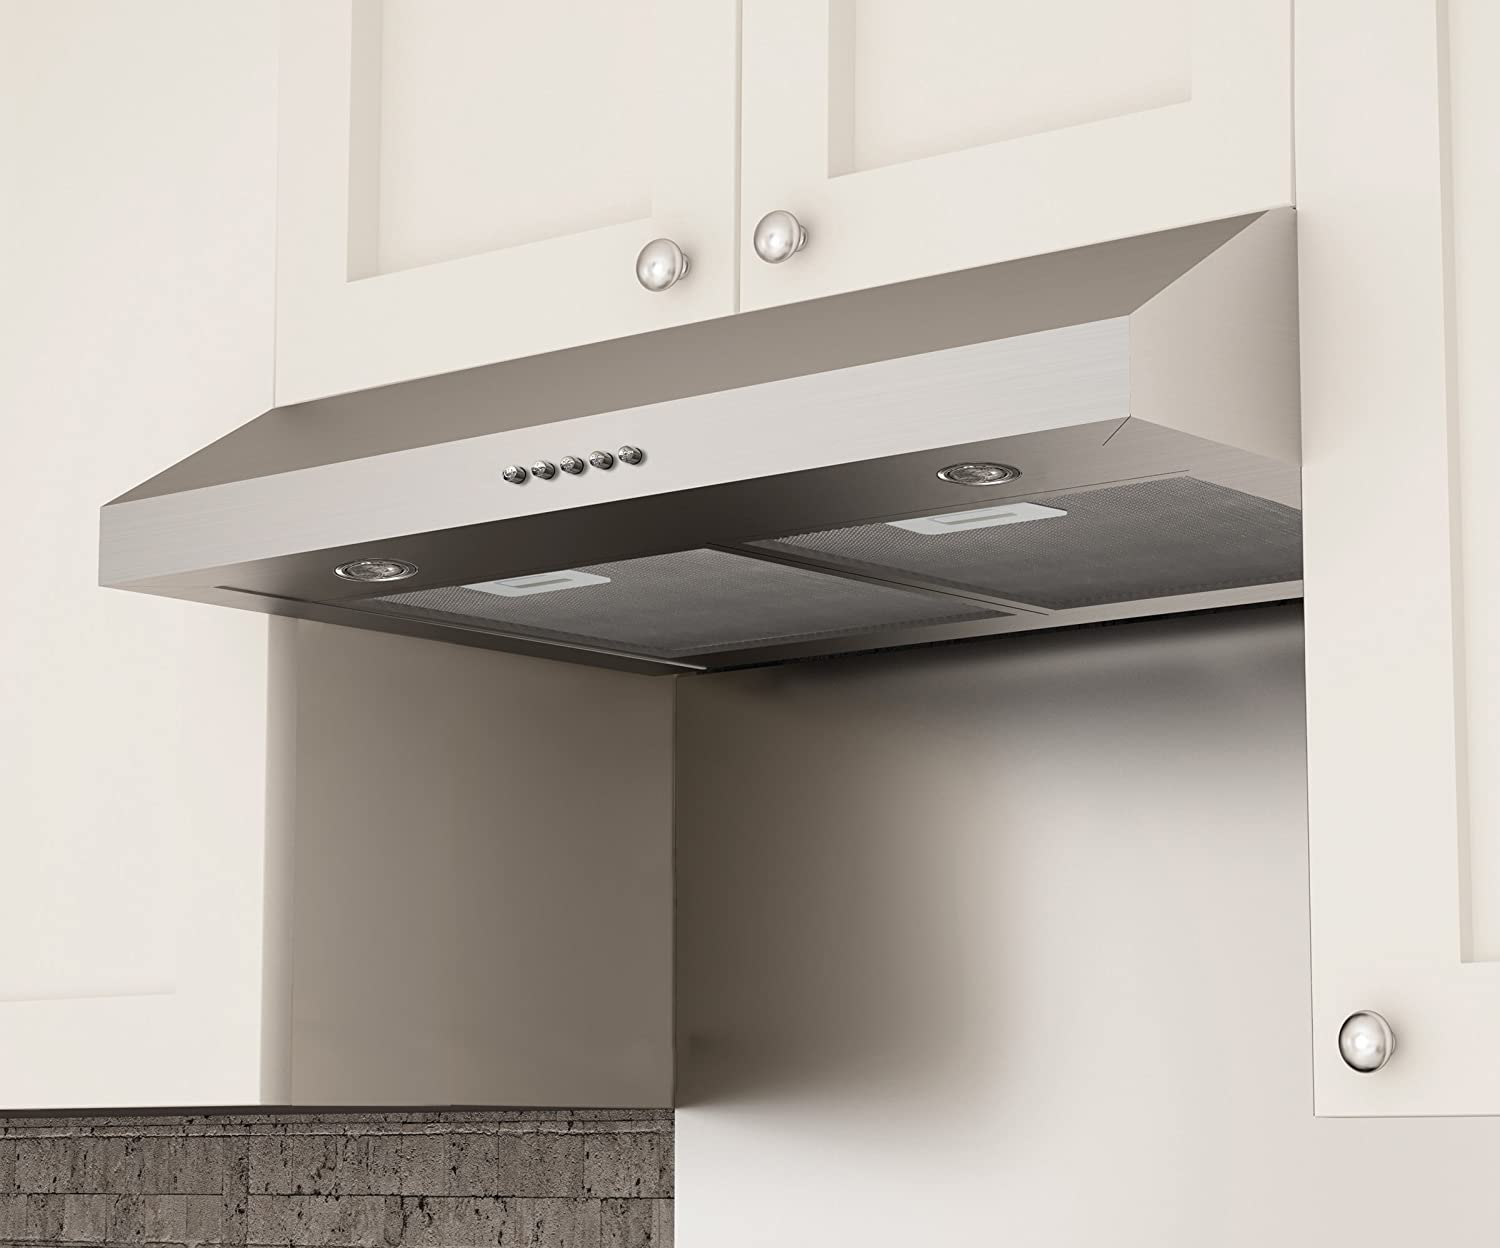 breeze from home under garden inch the range zephyr series cfm ii product hood cabinet wide